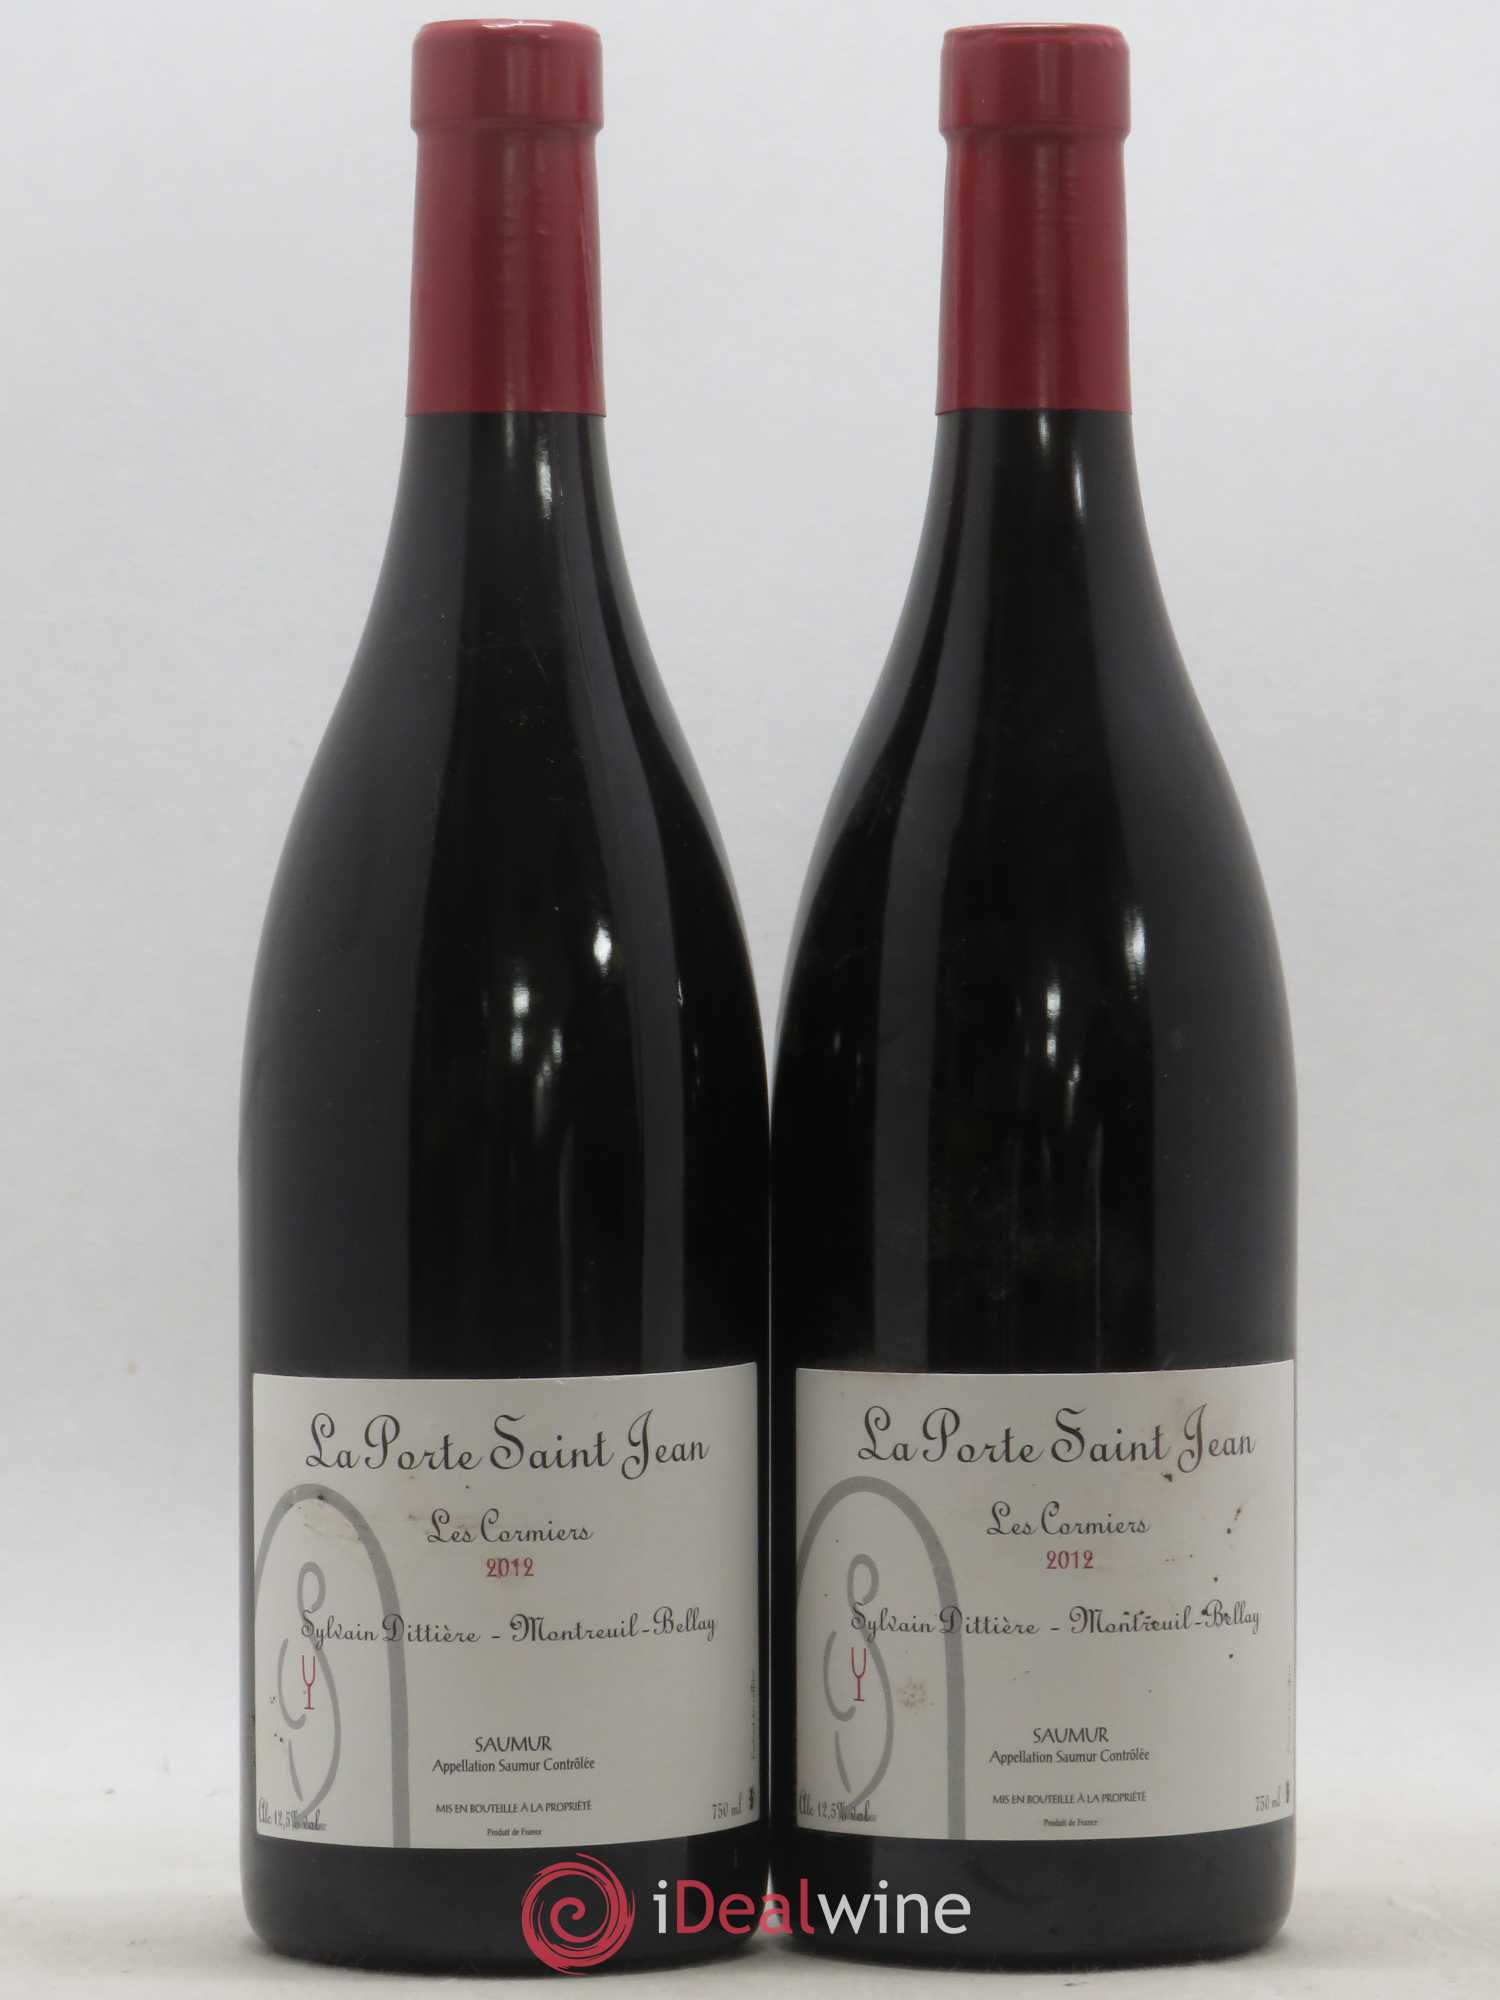 Saumur Les Cormiers La Porte Saint Jean  2012 - Lot of 2 Bottles